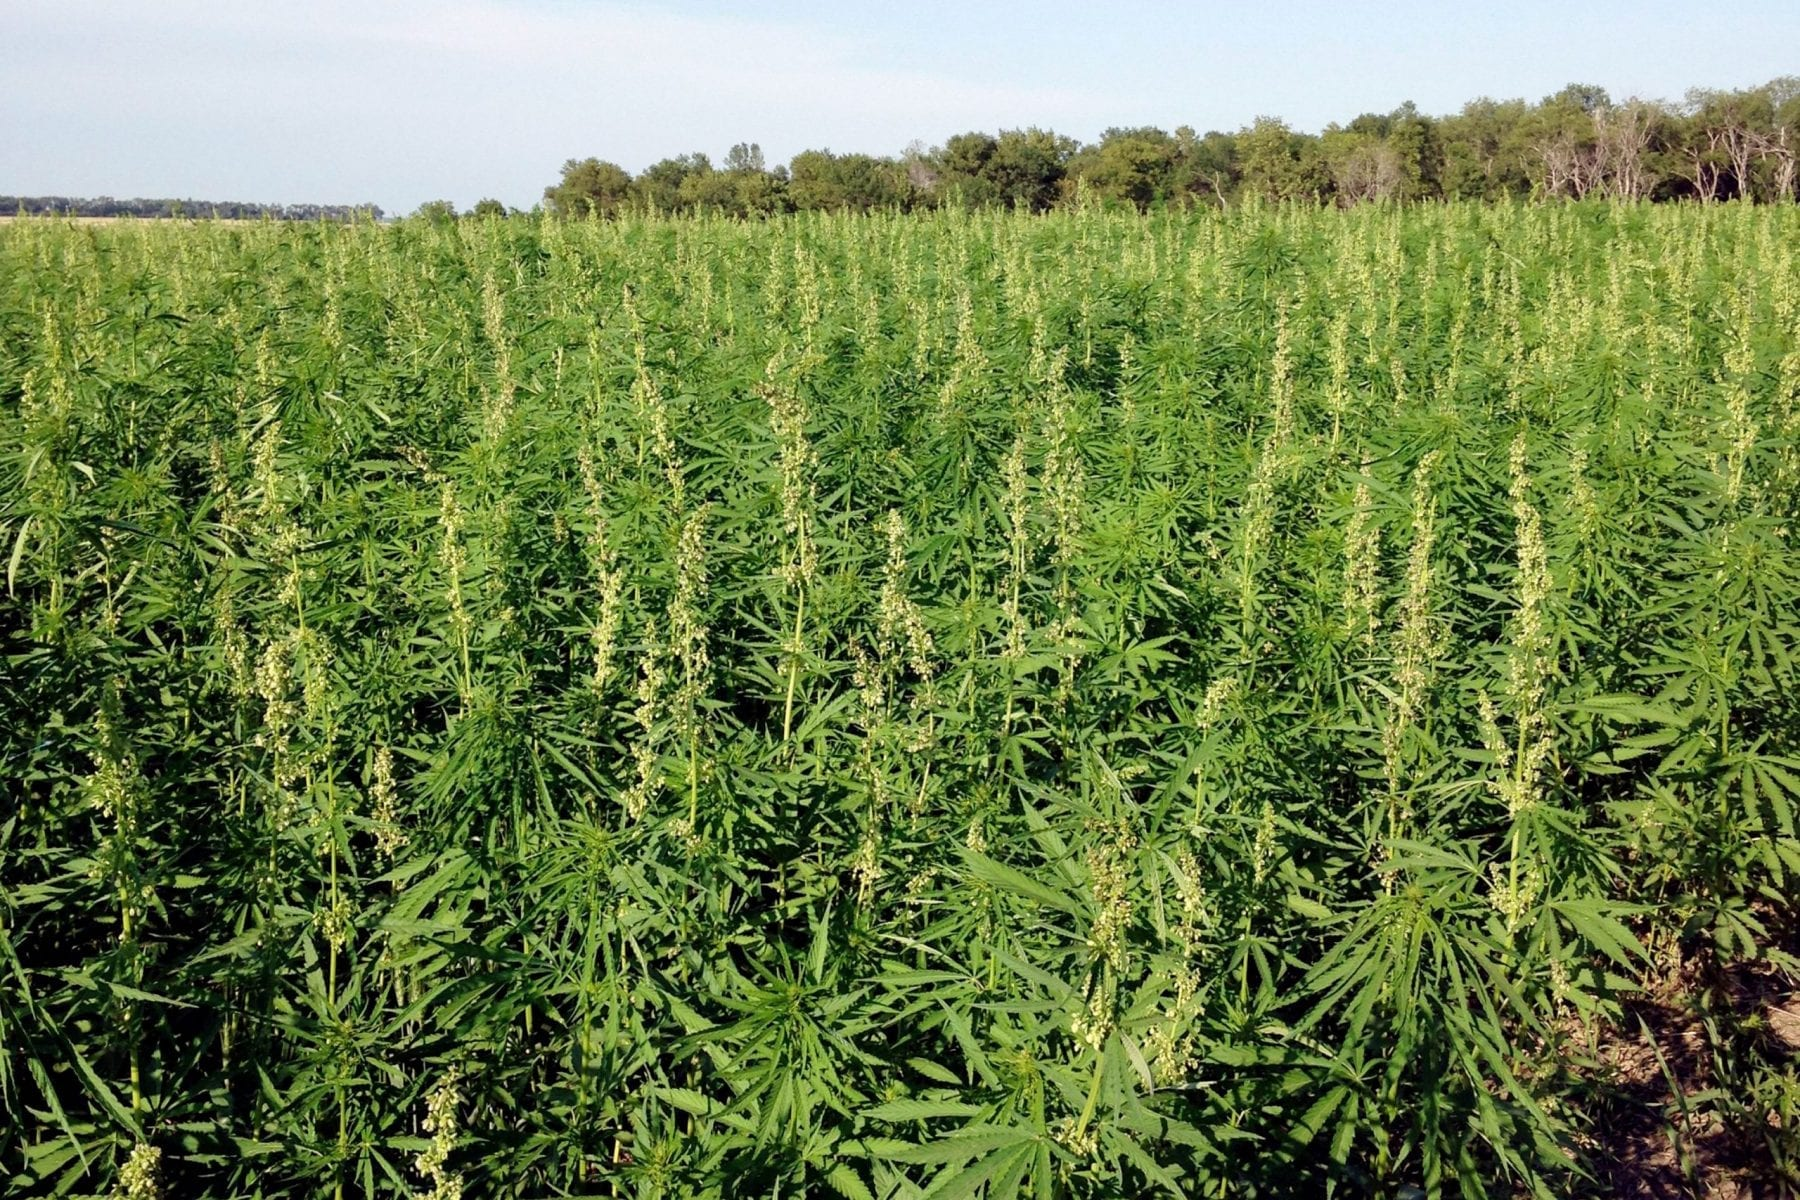 New Guidance on Waste Disposal for Hemp Producers